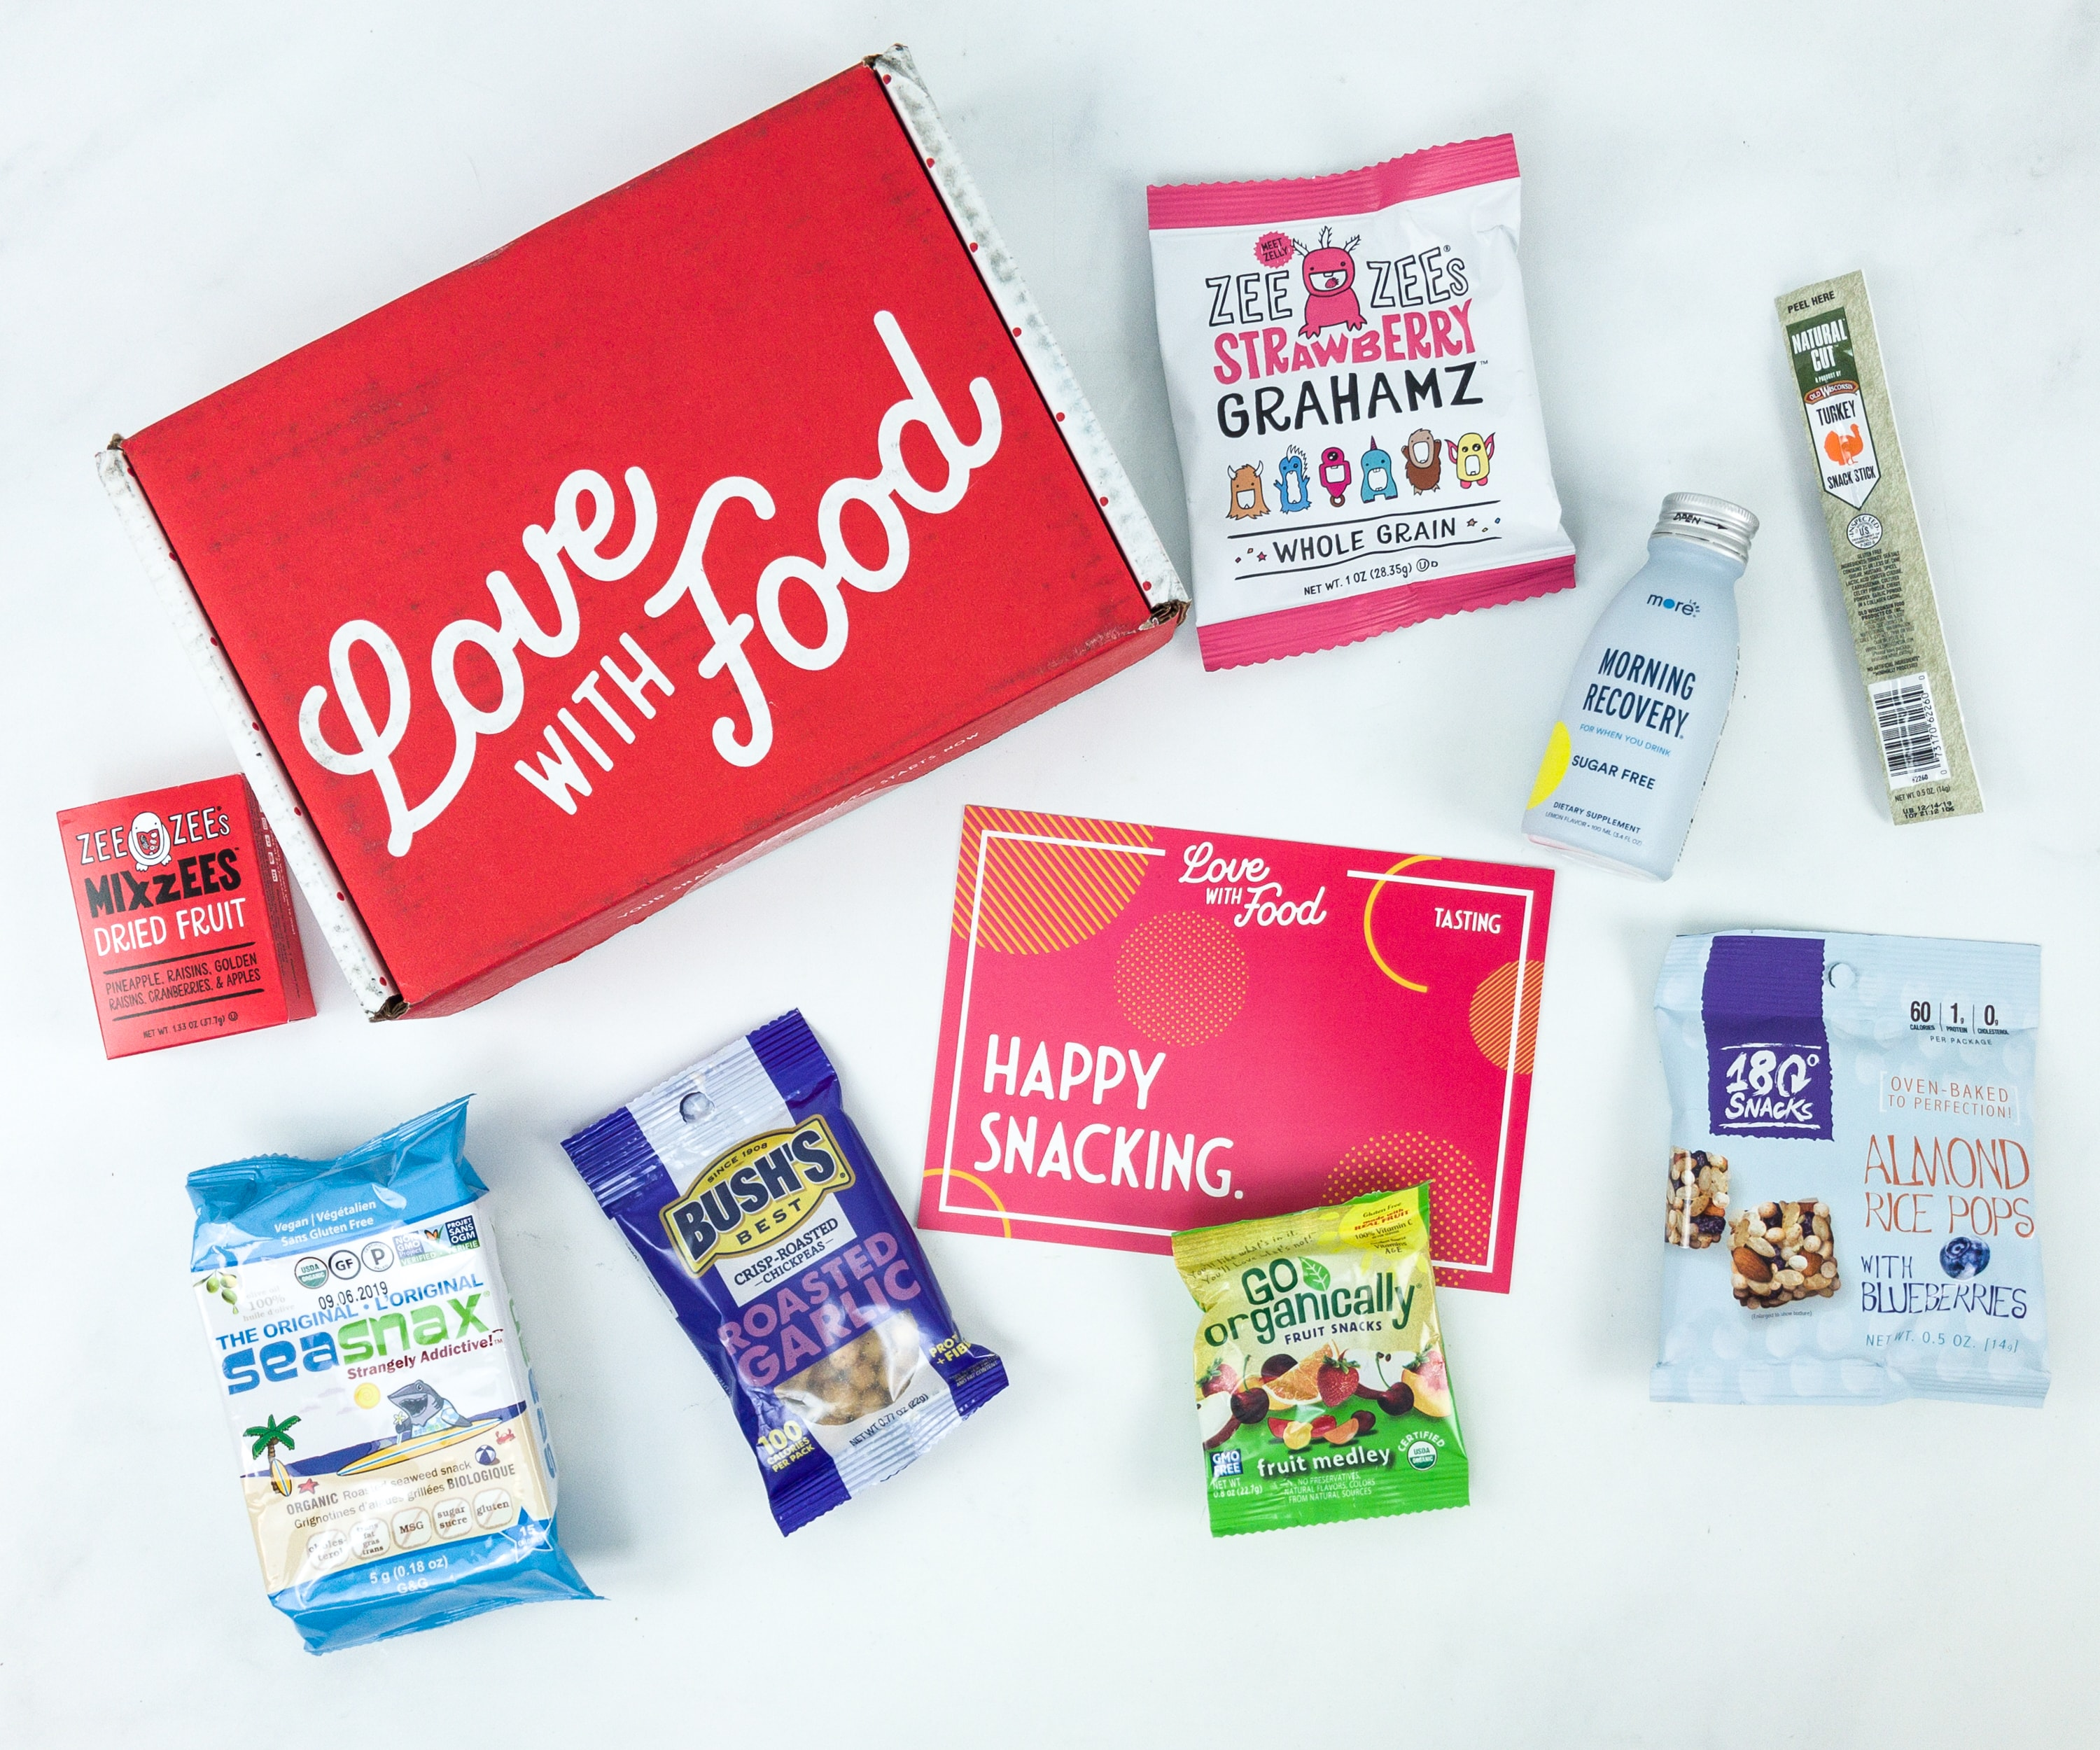 Love With Food June 2019 Tasting Box Review + Coupon!